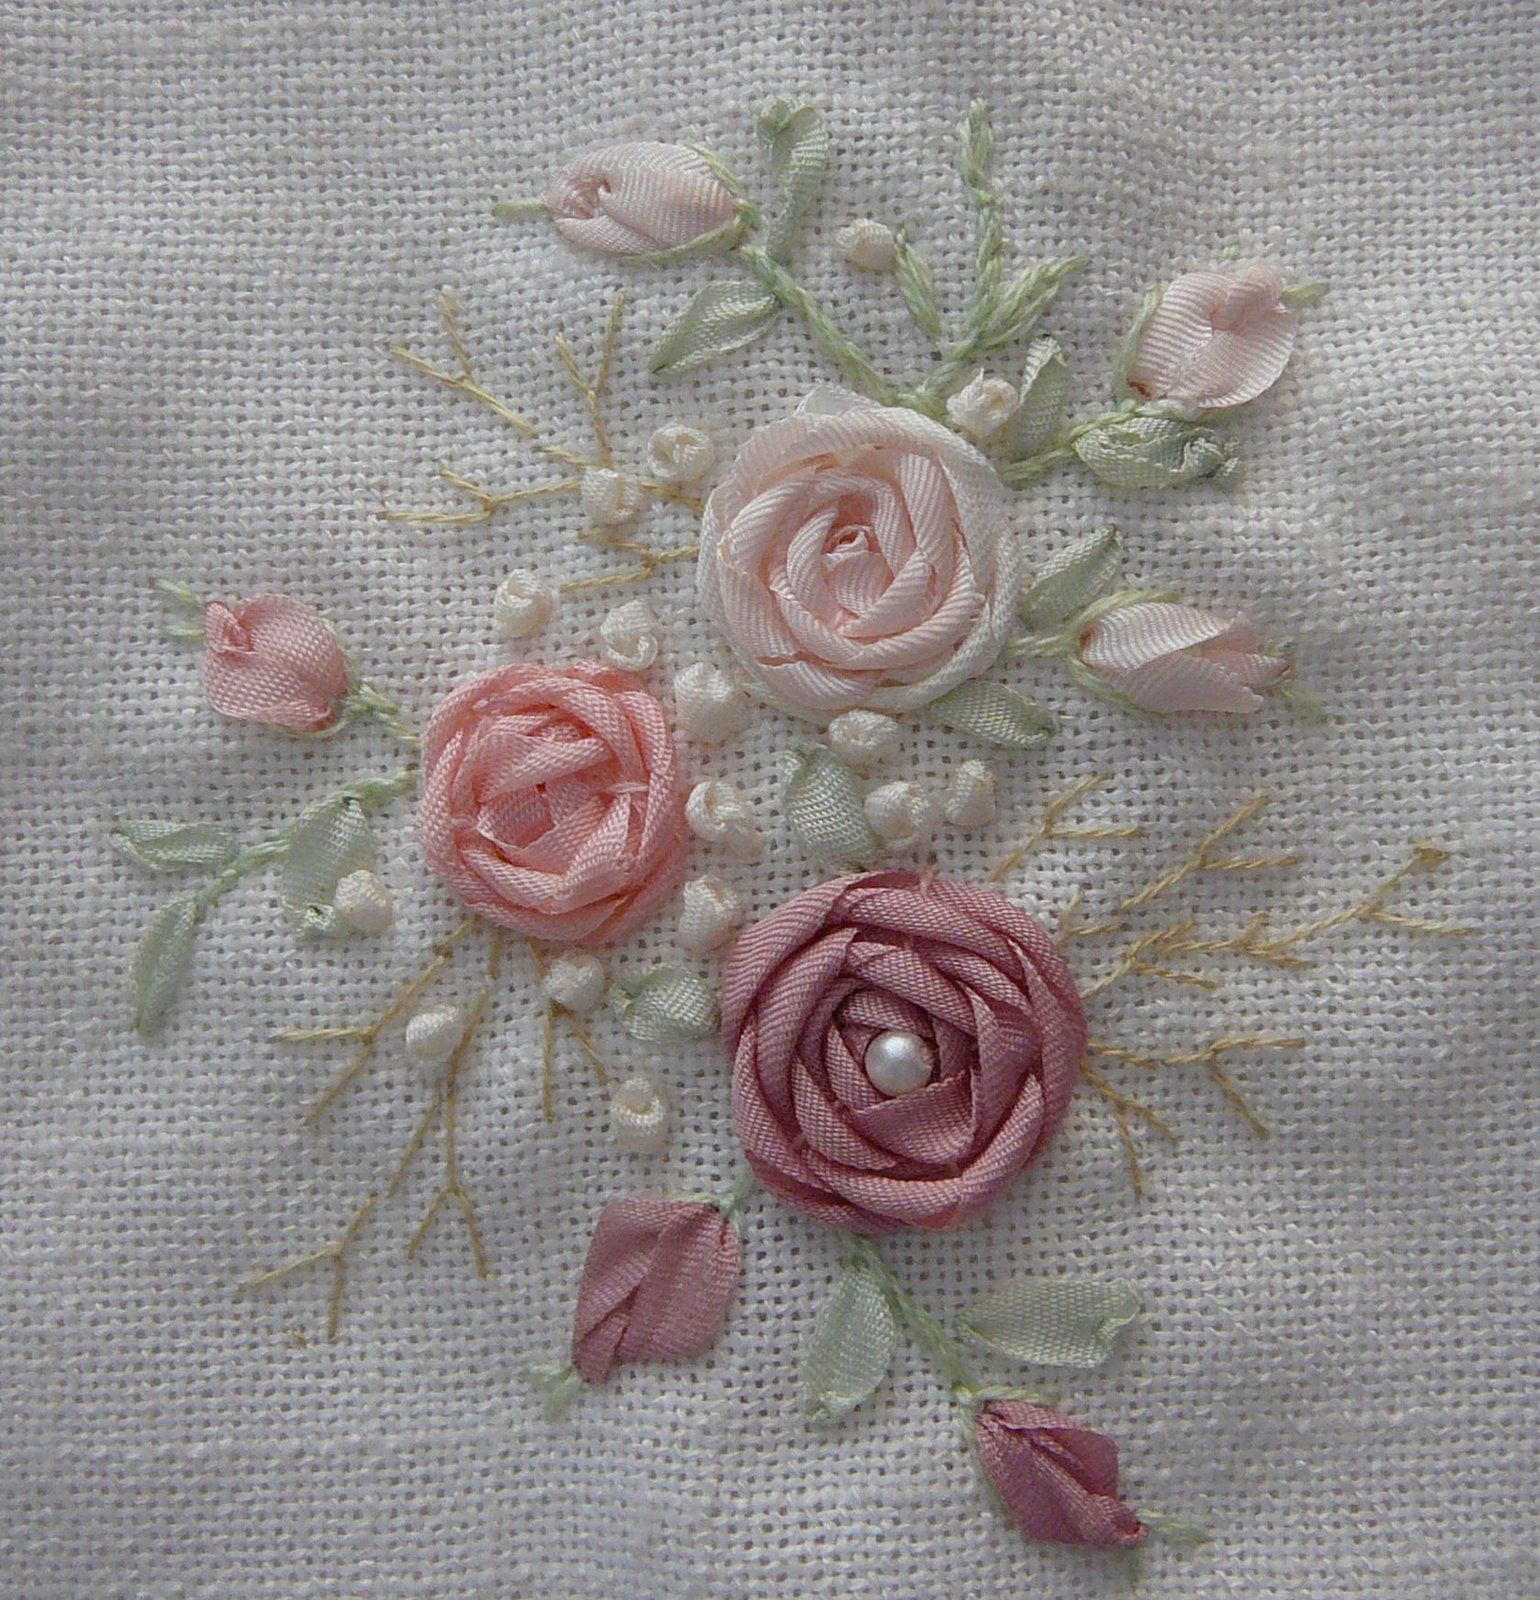 Silk Ribbon Embroidery French Knots In Ribbon SRE